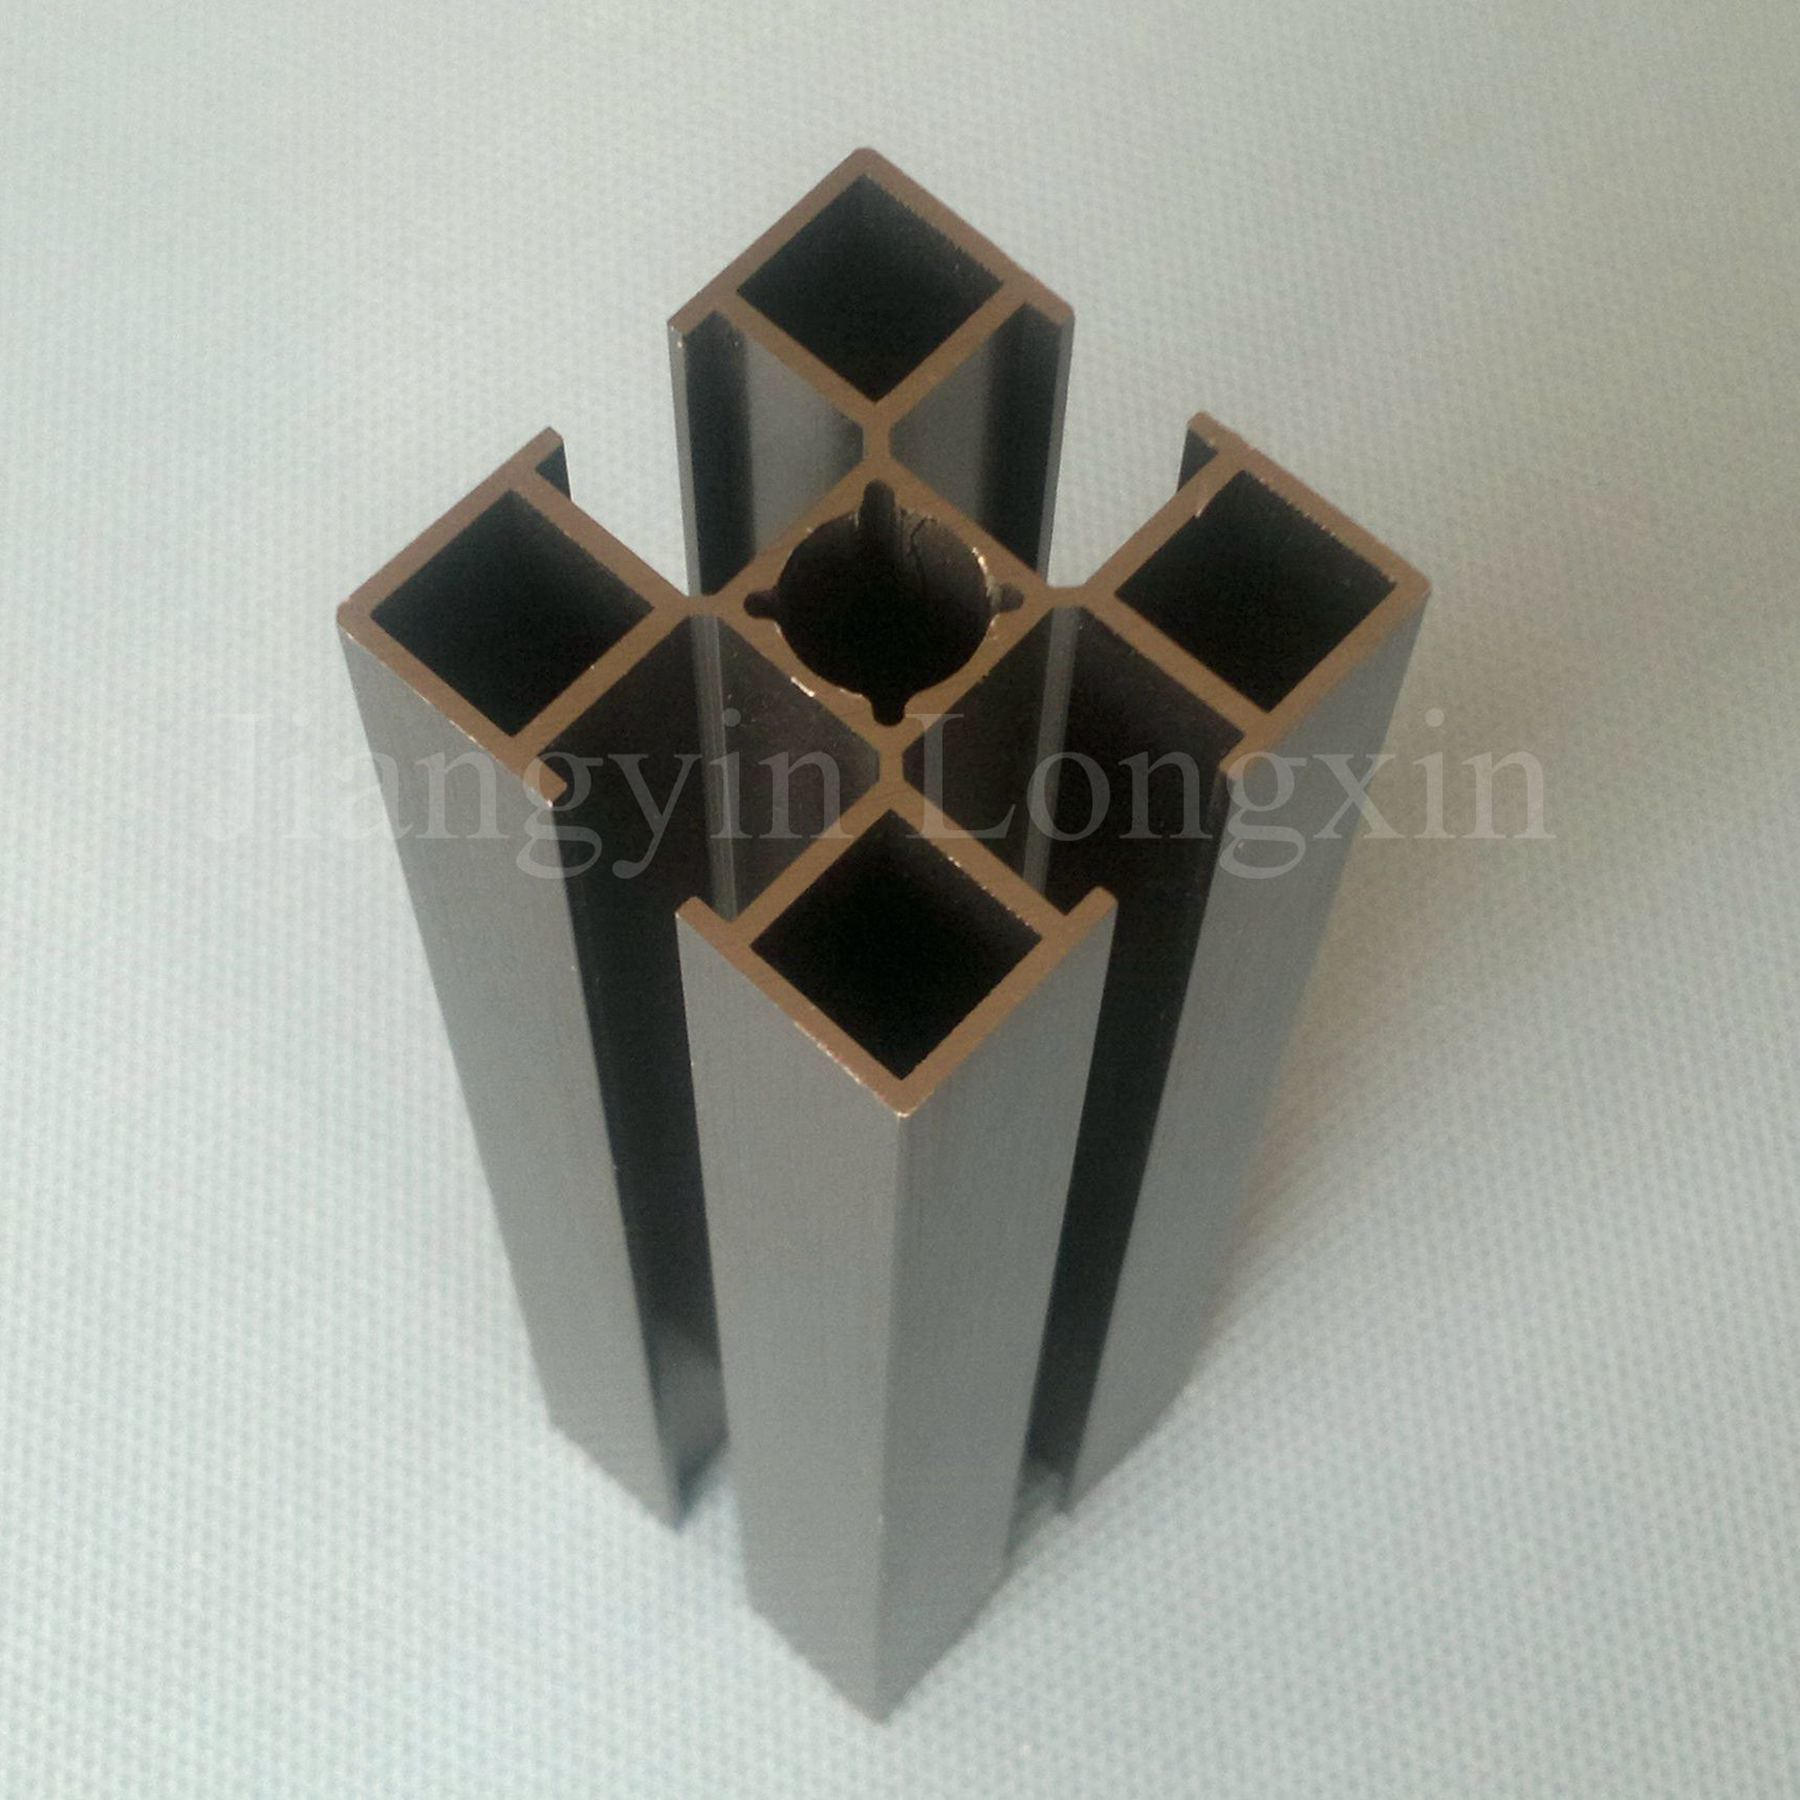 30X30 Aluminum Profile for Industry, Brown Anodized